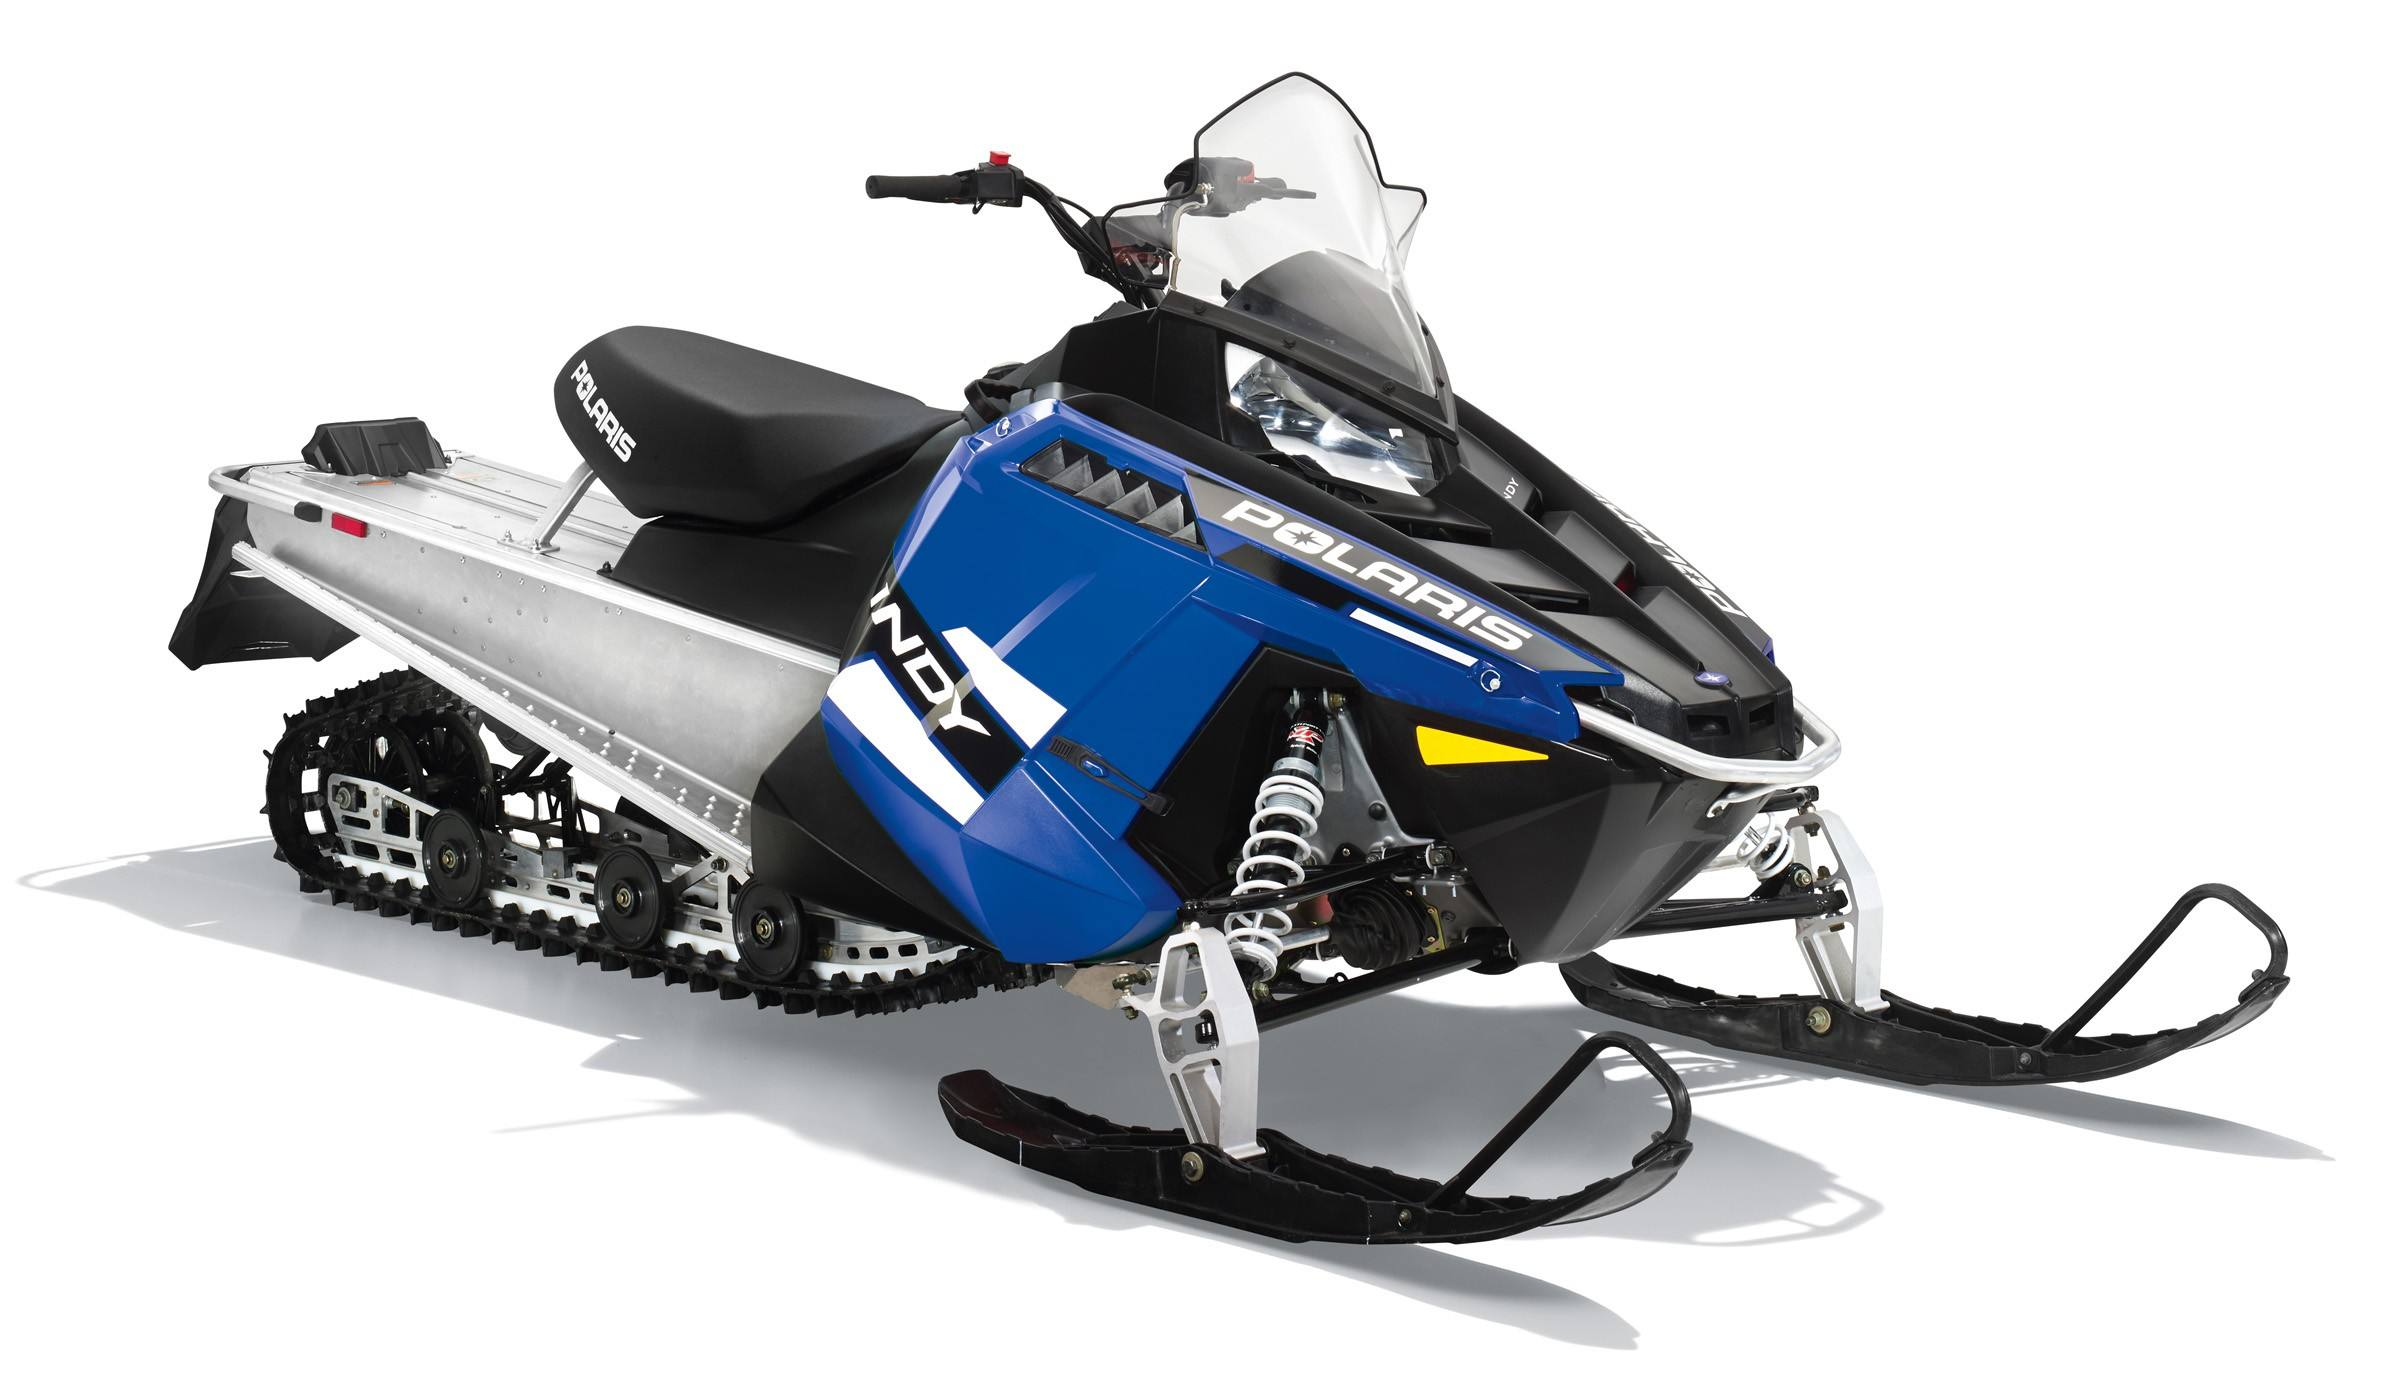 2016 Polaris 550 INDY 144 in Marietta, Ohio